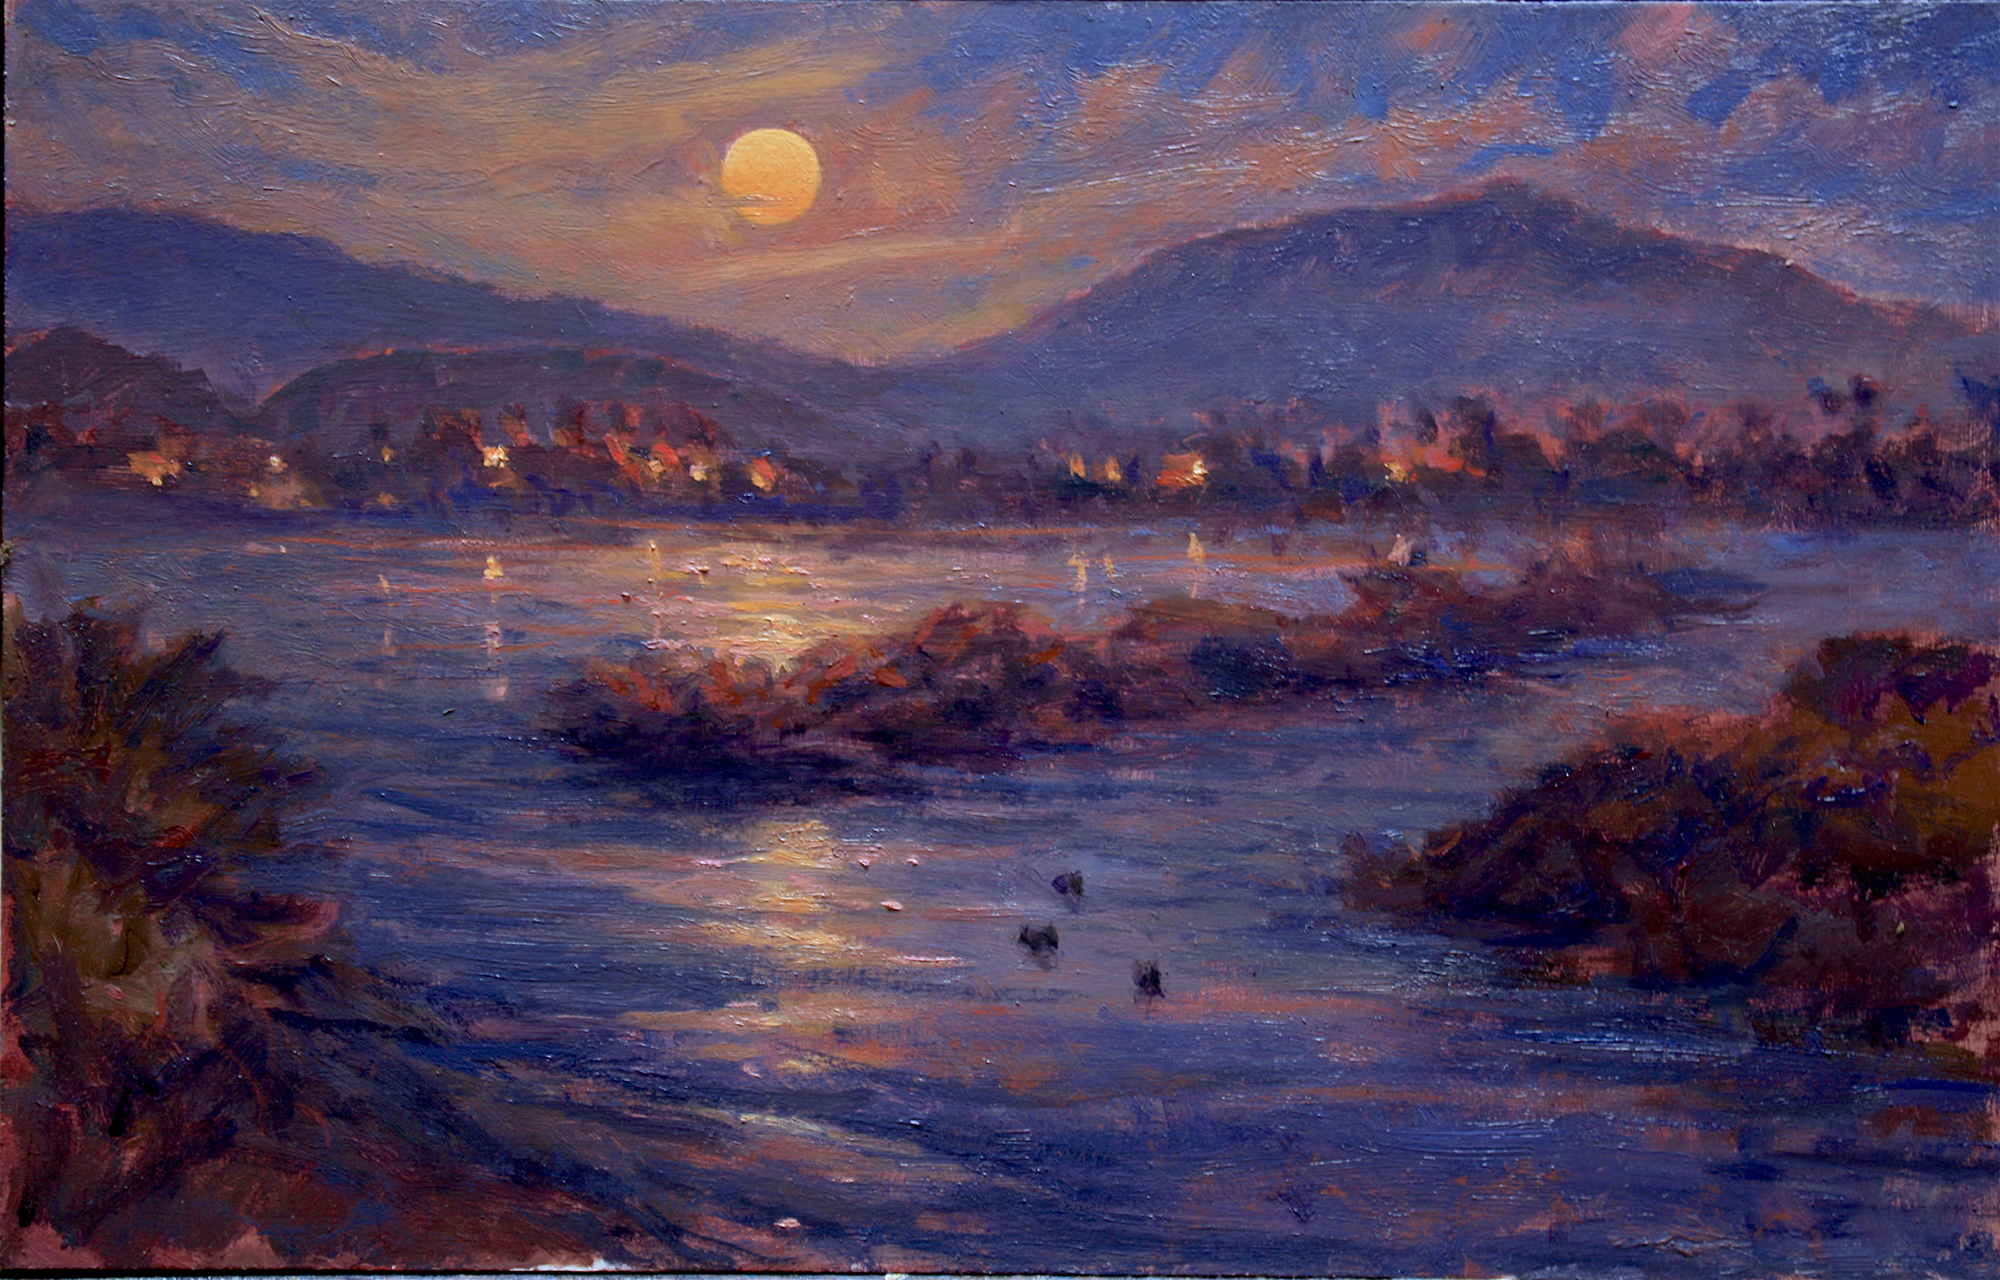 King Tide and Super Moon Rise, 12x19, oil on board, 2019